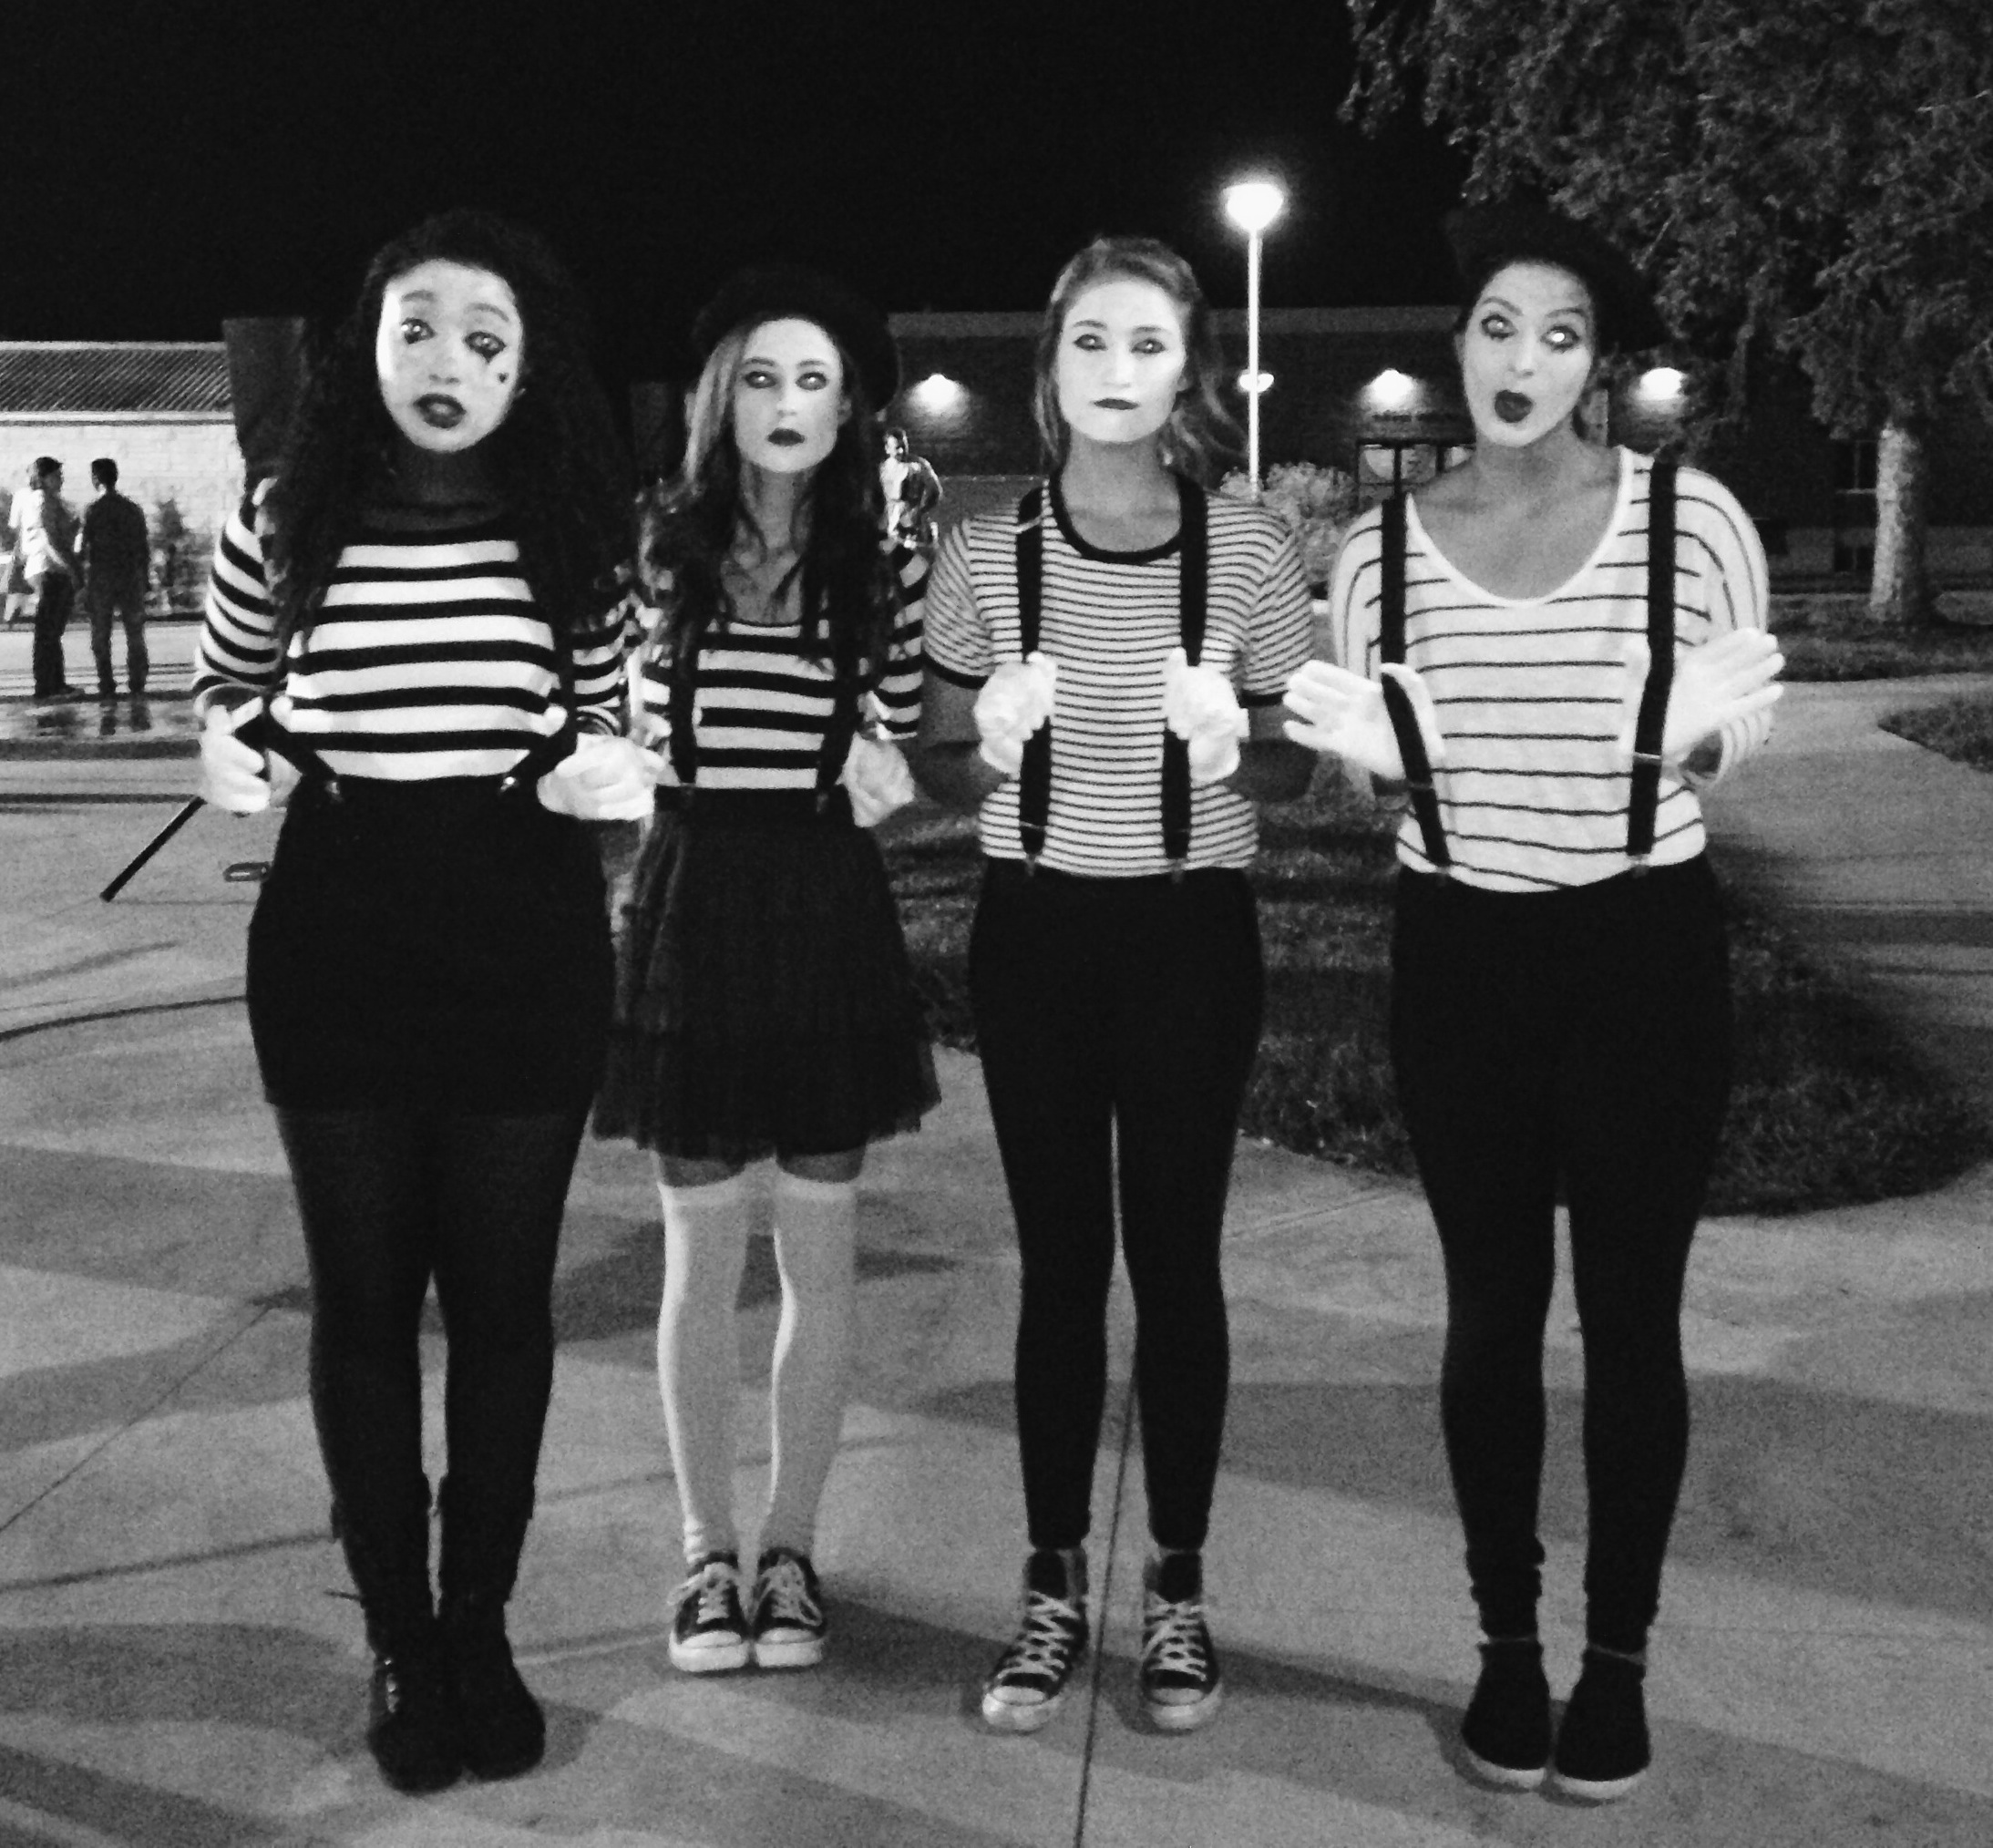 Mime Costume Idea | The Kardia Blog